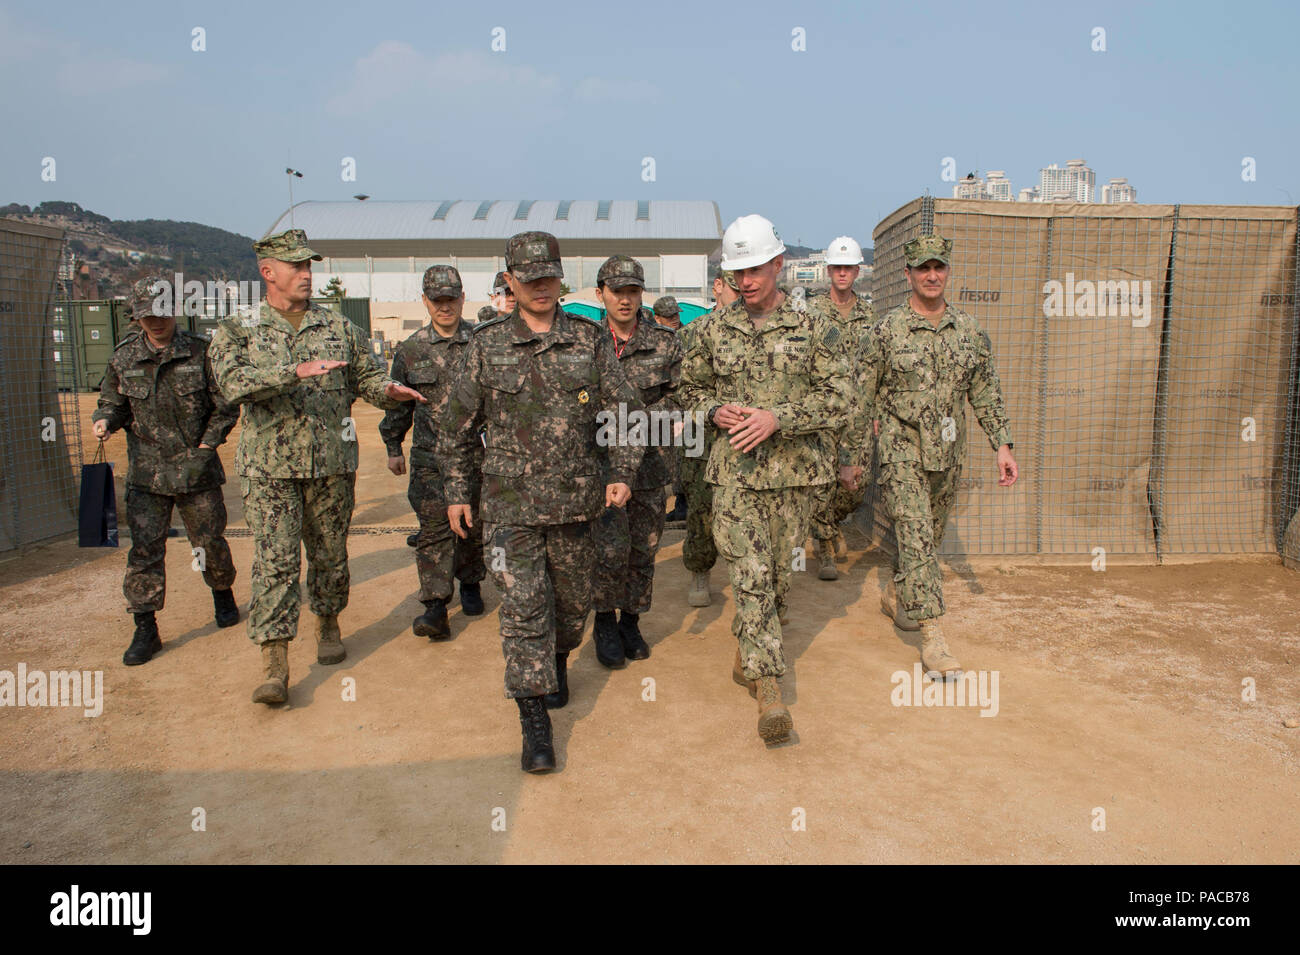 160314-N-HA376-197 BUSAN, Republic of Korea (March 14, 2016) - U.S. Navy Capt. James Meyer, commodore, 30th Naval Construction Regiment, speaks with Commander Republic of Korea (ROK) Fleet Vice Adm. Lee, Ki-sik, during a tour of a joint U.S. and ROK construction site during exercise Foal Eagle 2016. Lee visited the site to see the various expeditionary facilities built by U.S. Navy and ROK Seabees during the exercise. Foal Eagle is an annual, bilateral training exercise designed to enhance the readiness of U.S. and ROK forces, and their ability to work together during a crisis. (U.S. Navy phot - Stock Image